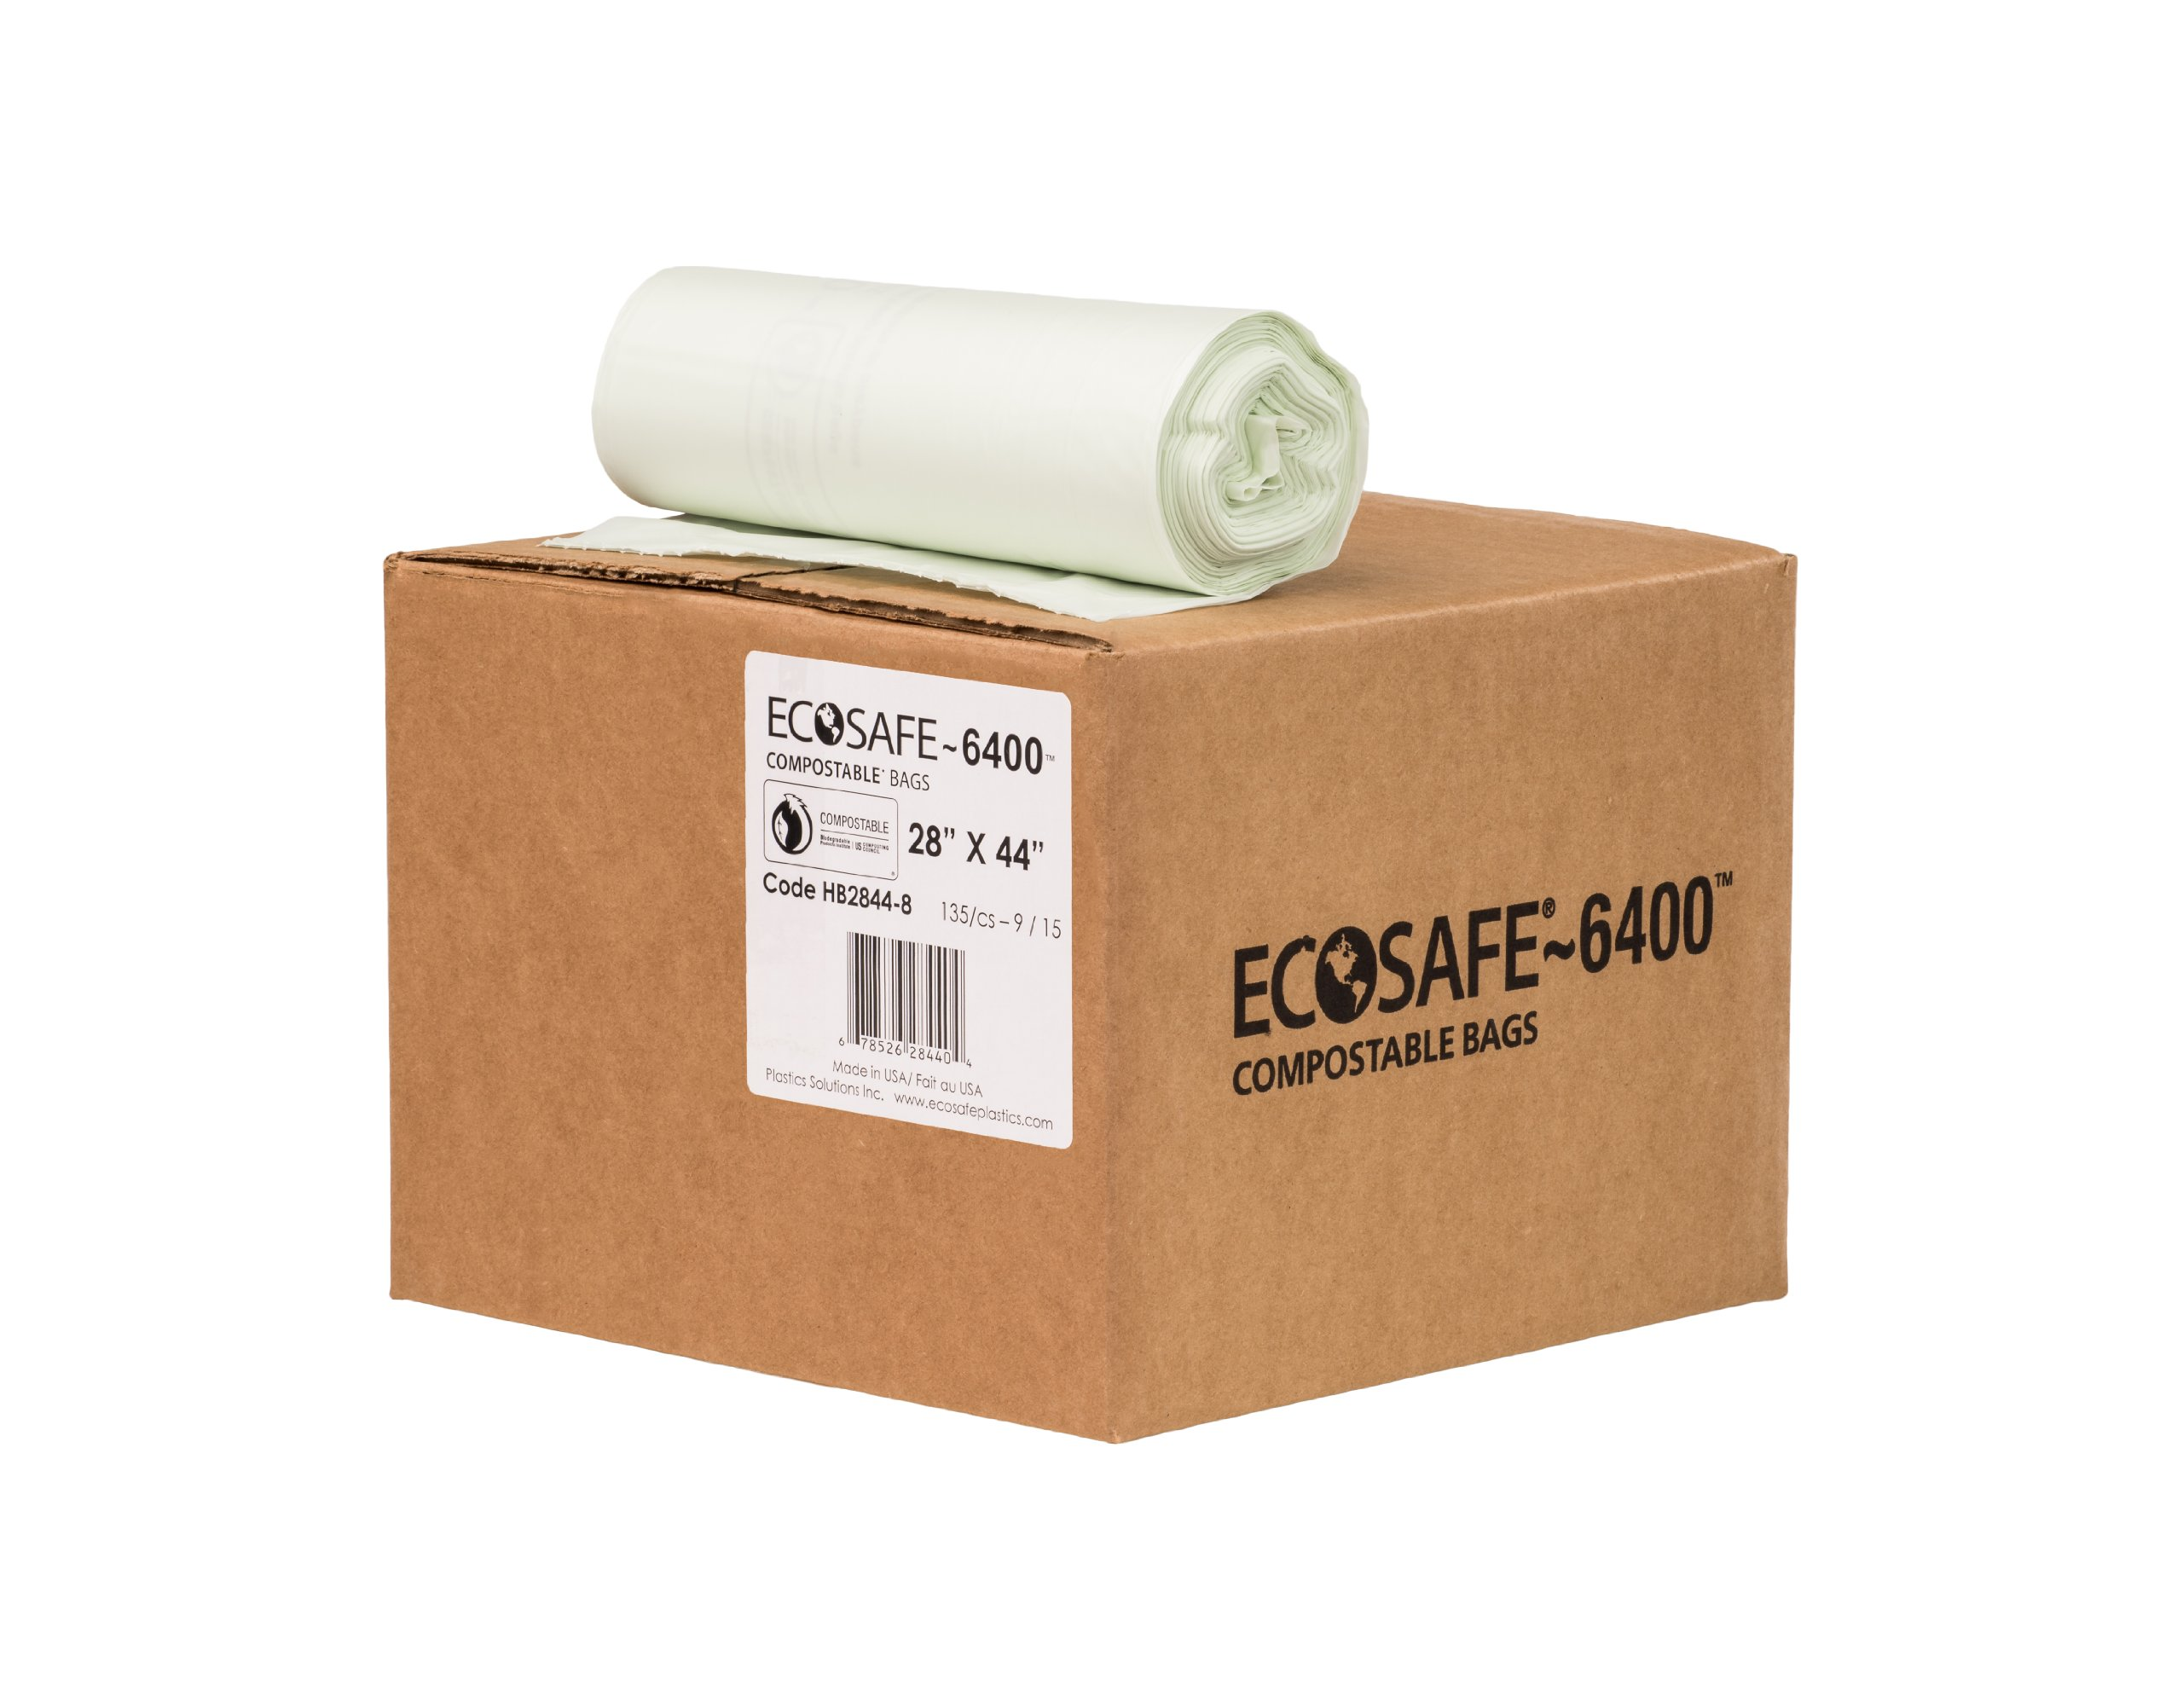 EcoSafe-6400 HB2844-8 Compostable Bag, Certified Compostable, 35-Gallon, Green (Pack of 135) by EcoSafe (Image #1)